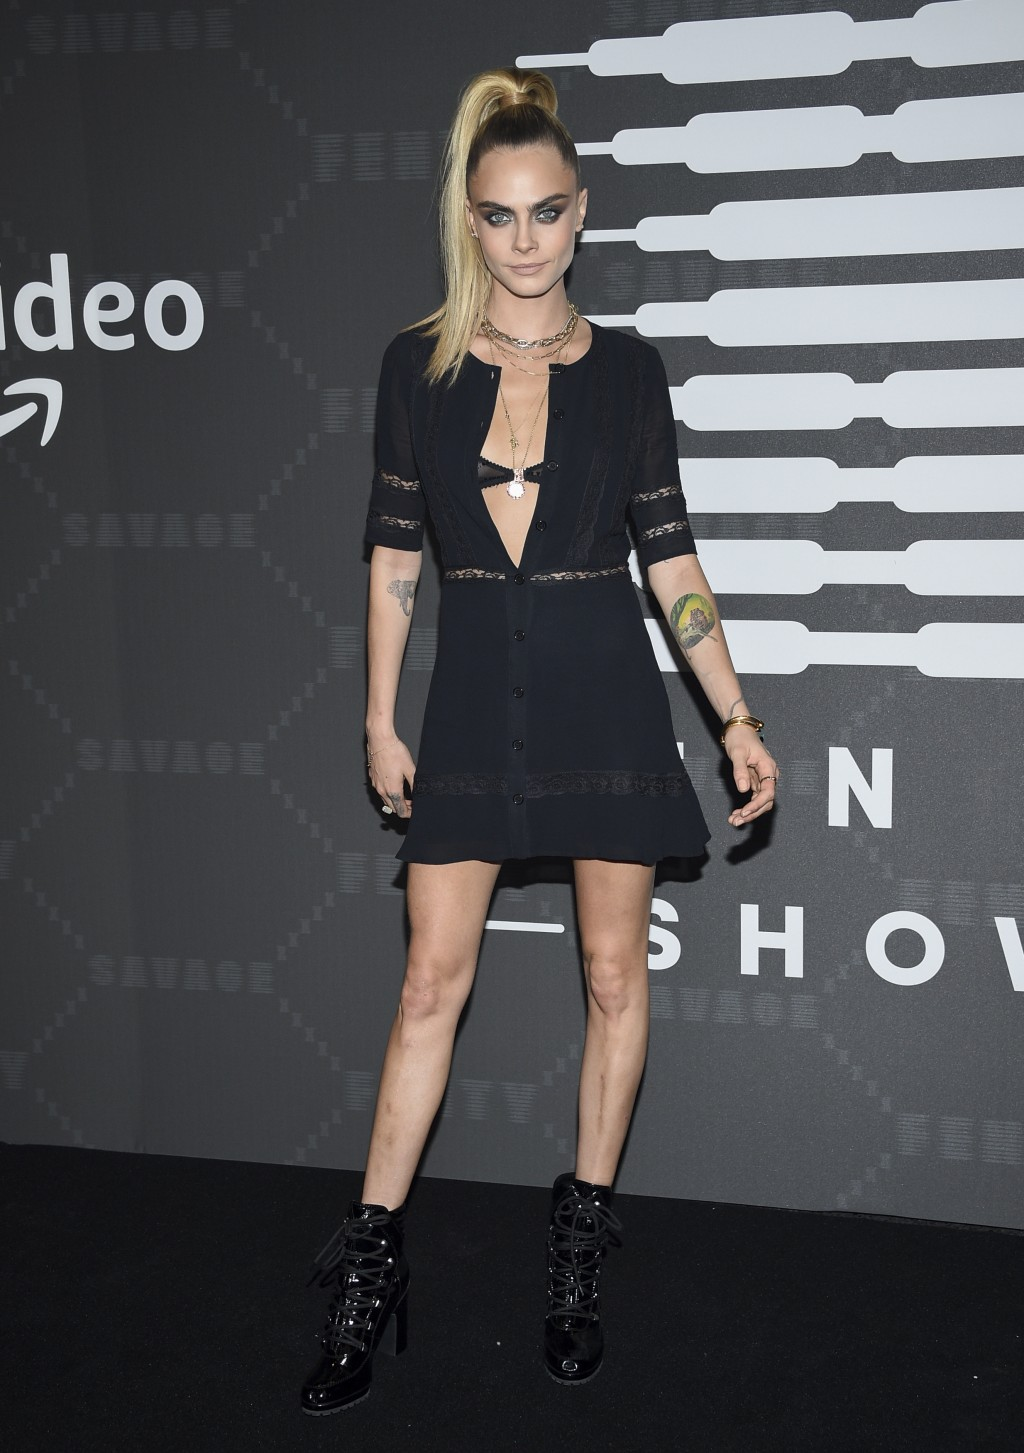 Actress Cara Delevingne attends the Spring/Summer 2020 Savage X Fenty show, presented by Amazon Prime, at the Barclays Center on Tuesday, Sept, 10, 20...